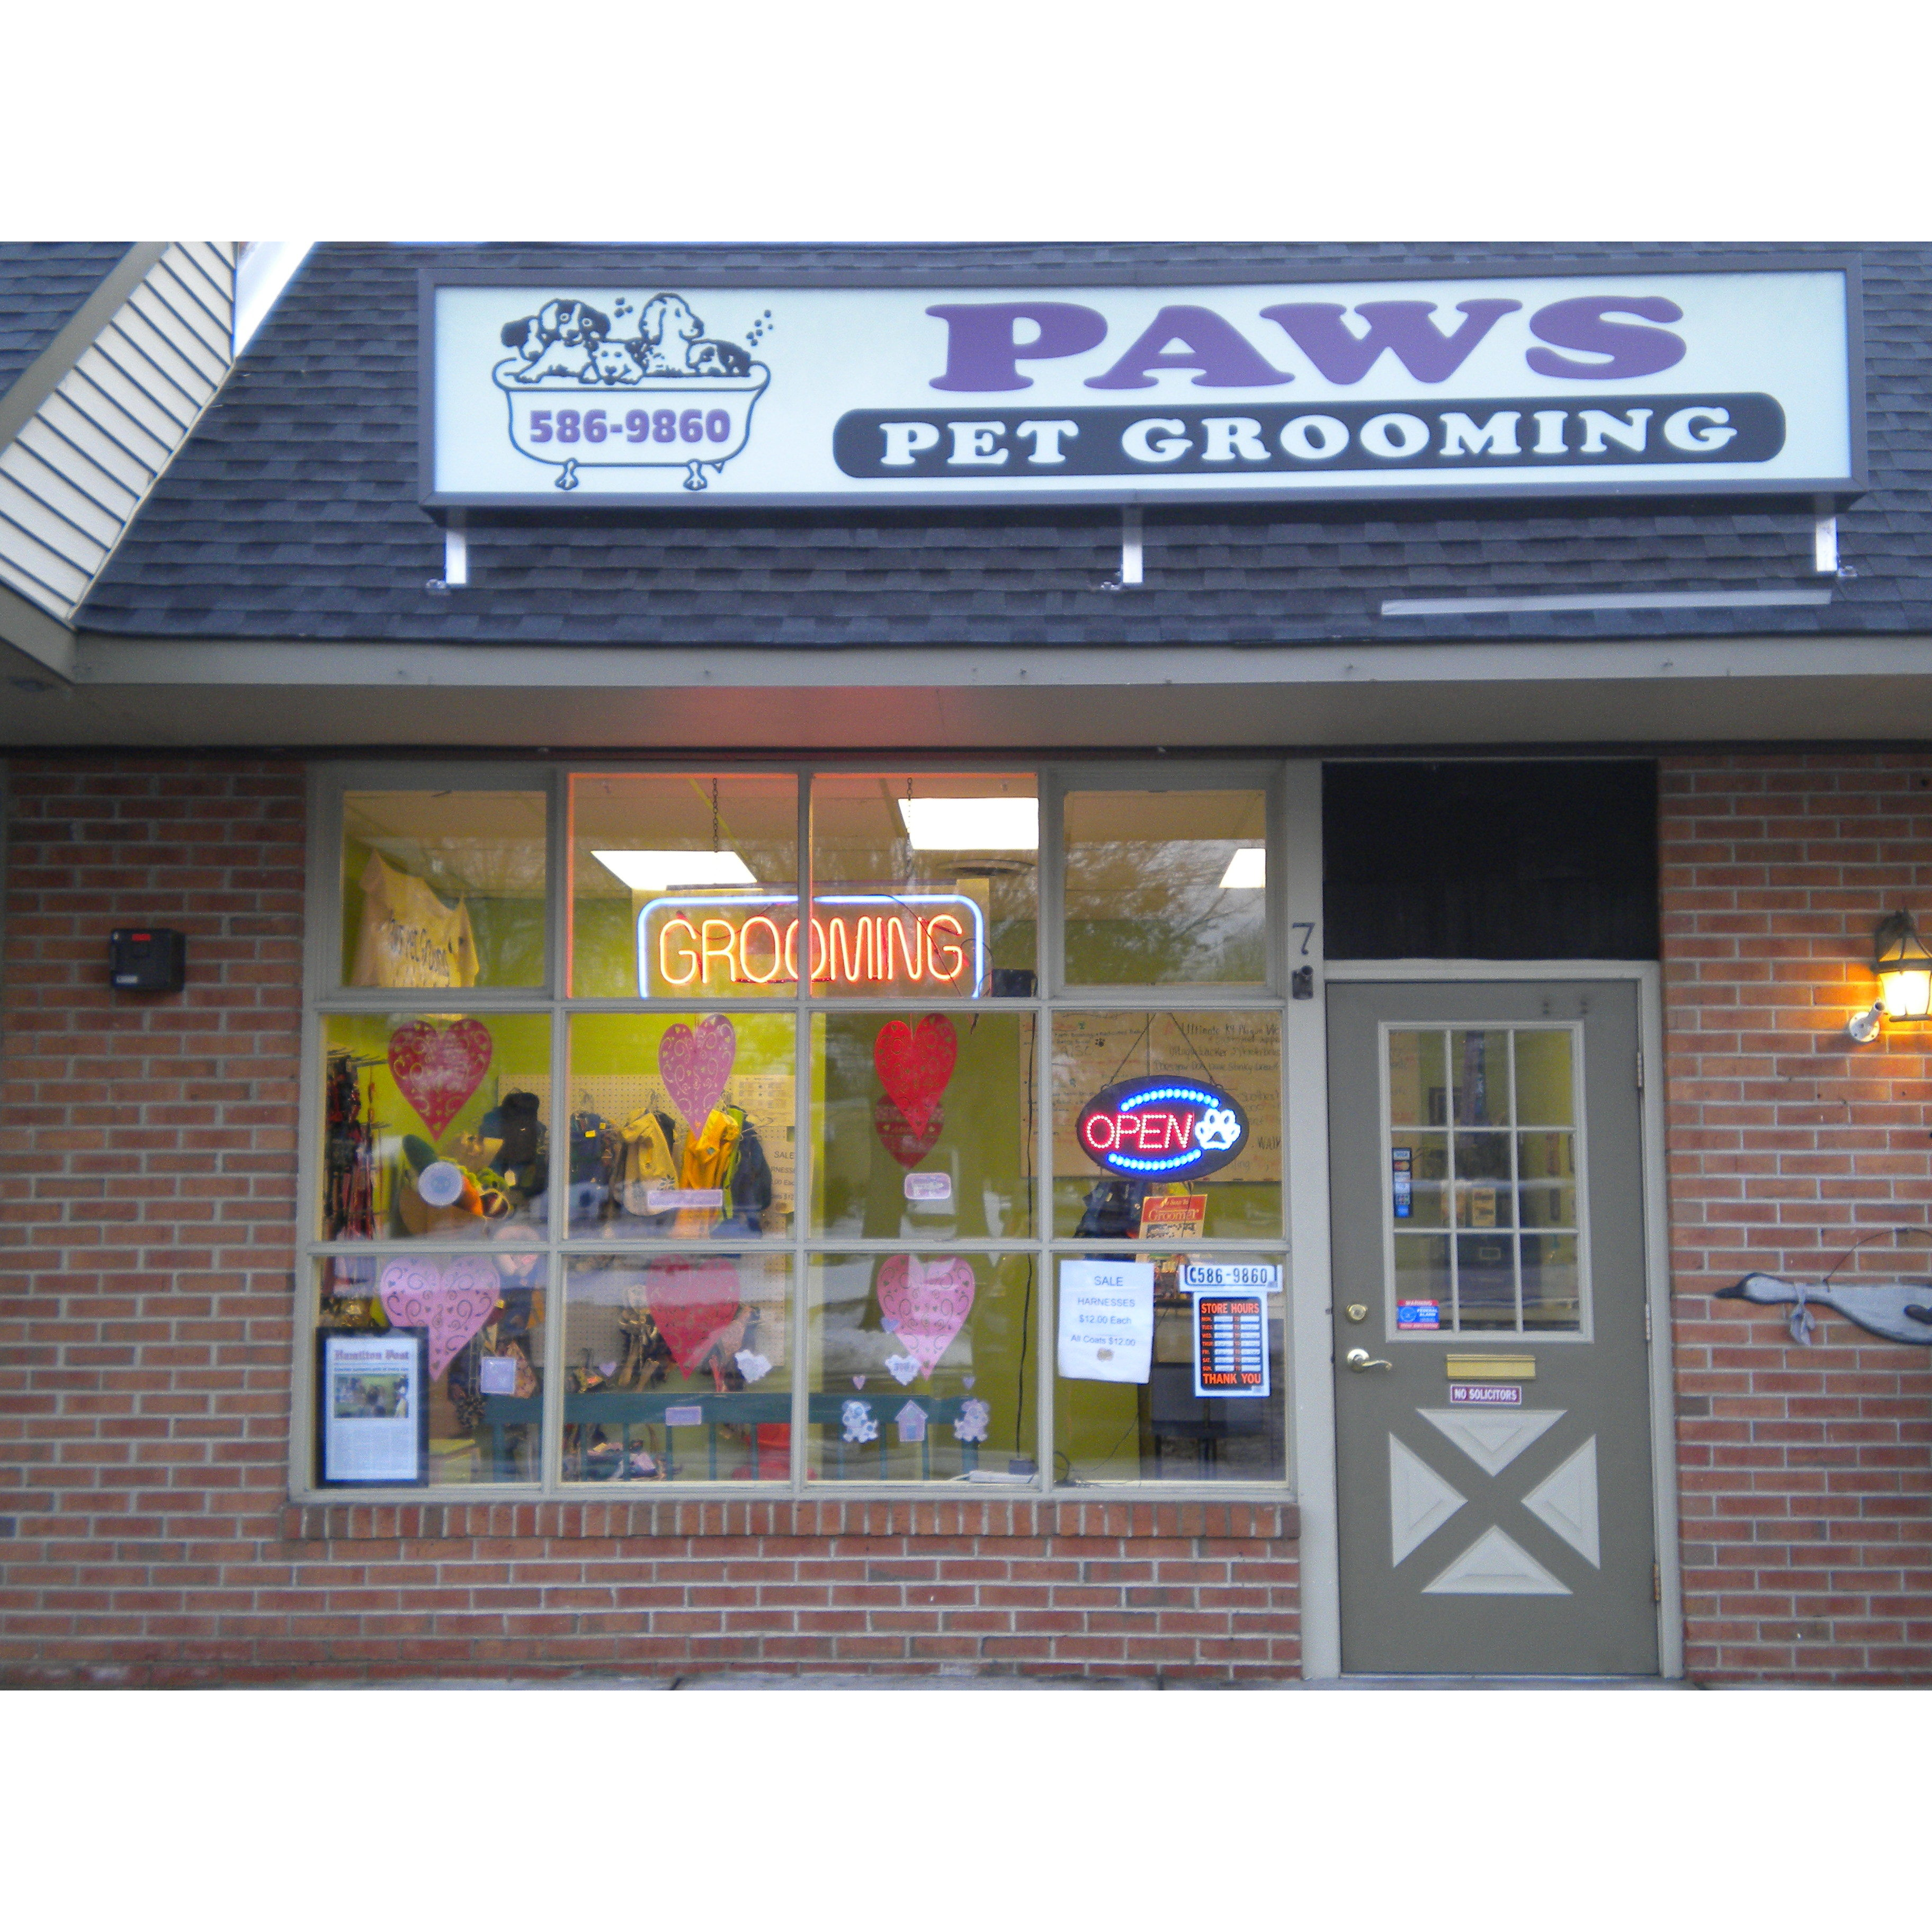 Paws pet groomers coupons near me in trenton 8coupons for Dog grooming salons near me